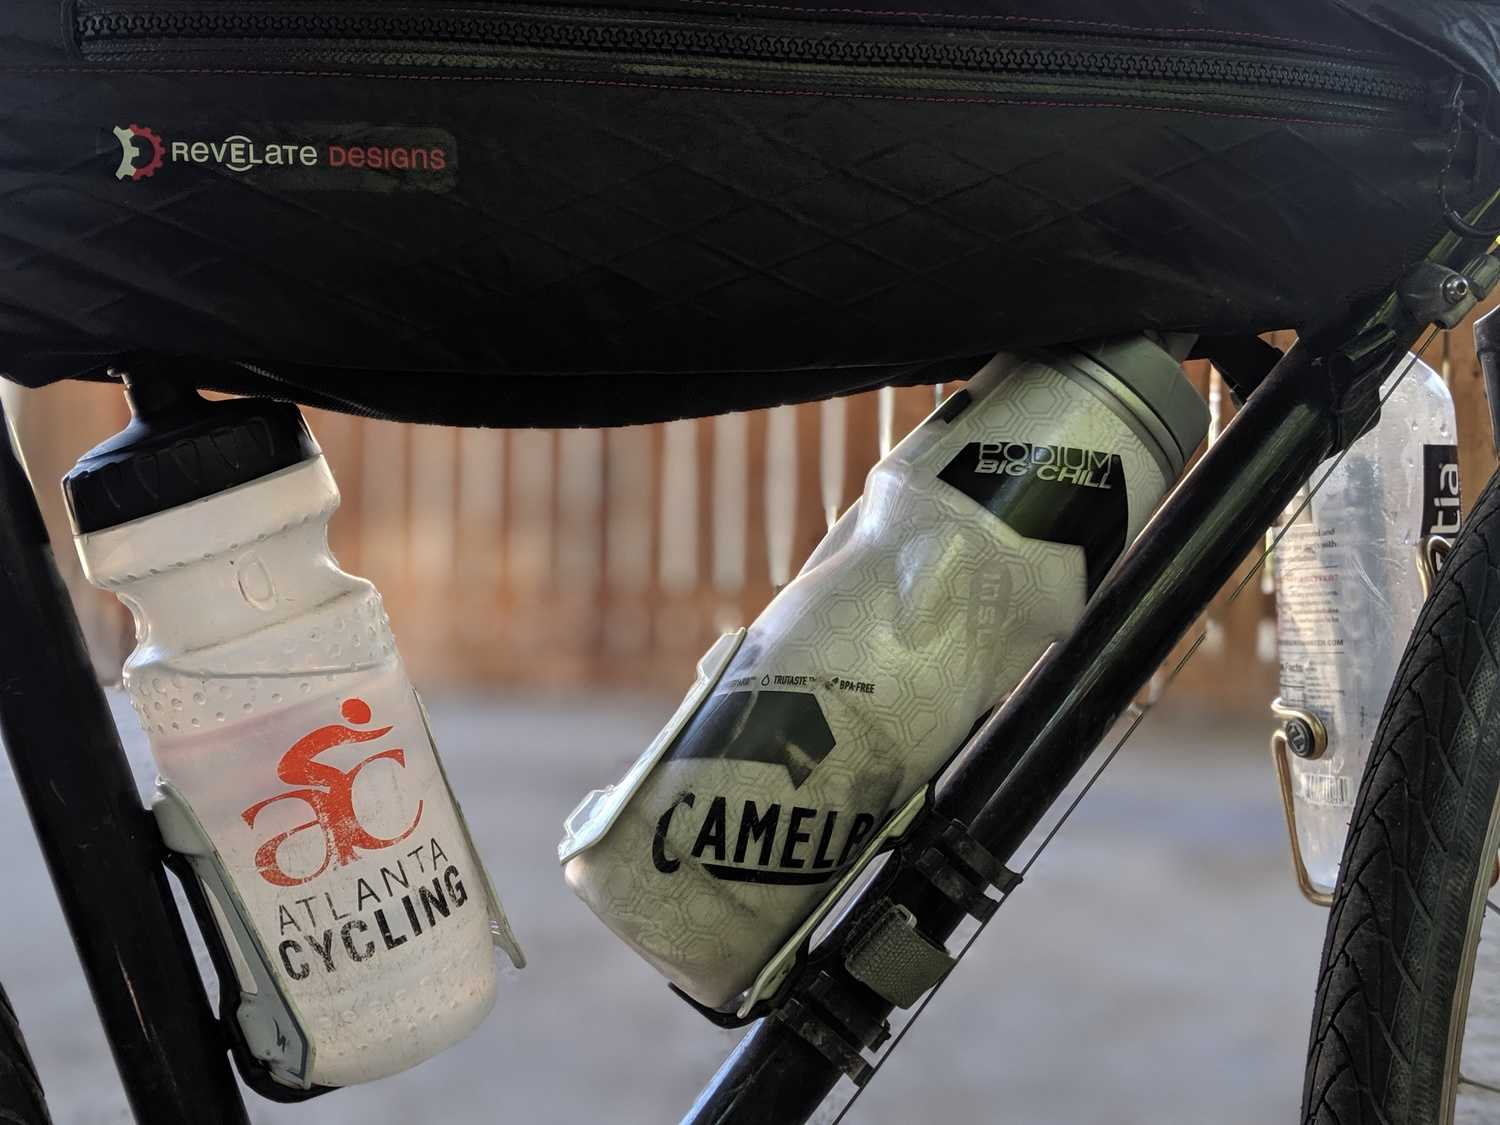 Frame bag and bike cages along with insulated water bottles.   Photo courtesy Brandon Lampley.